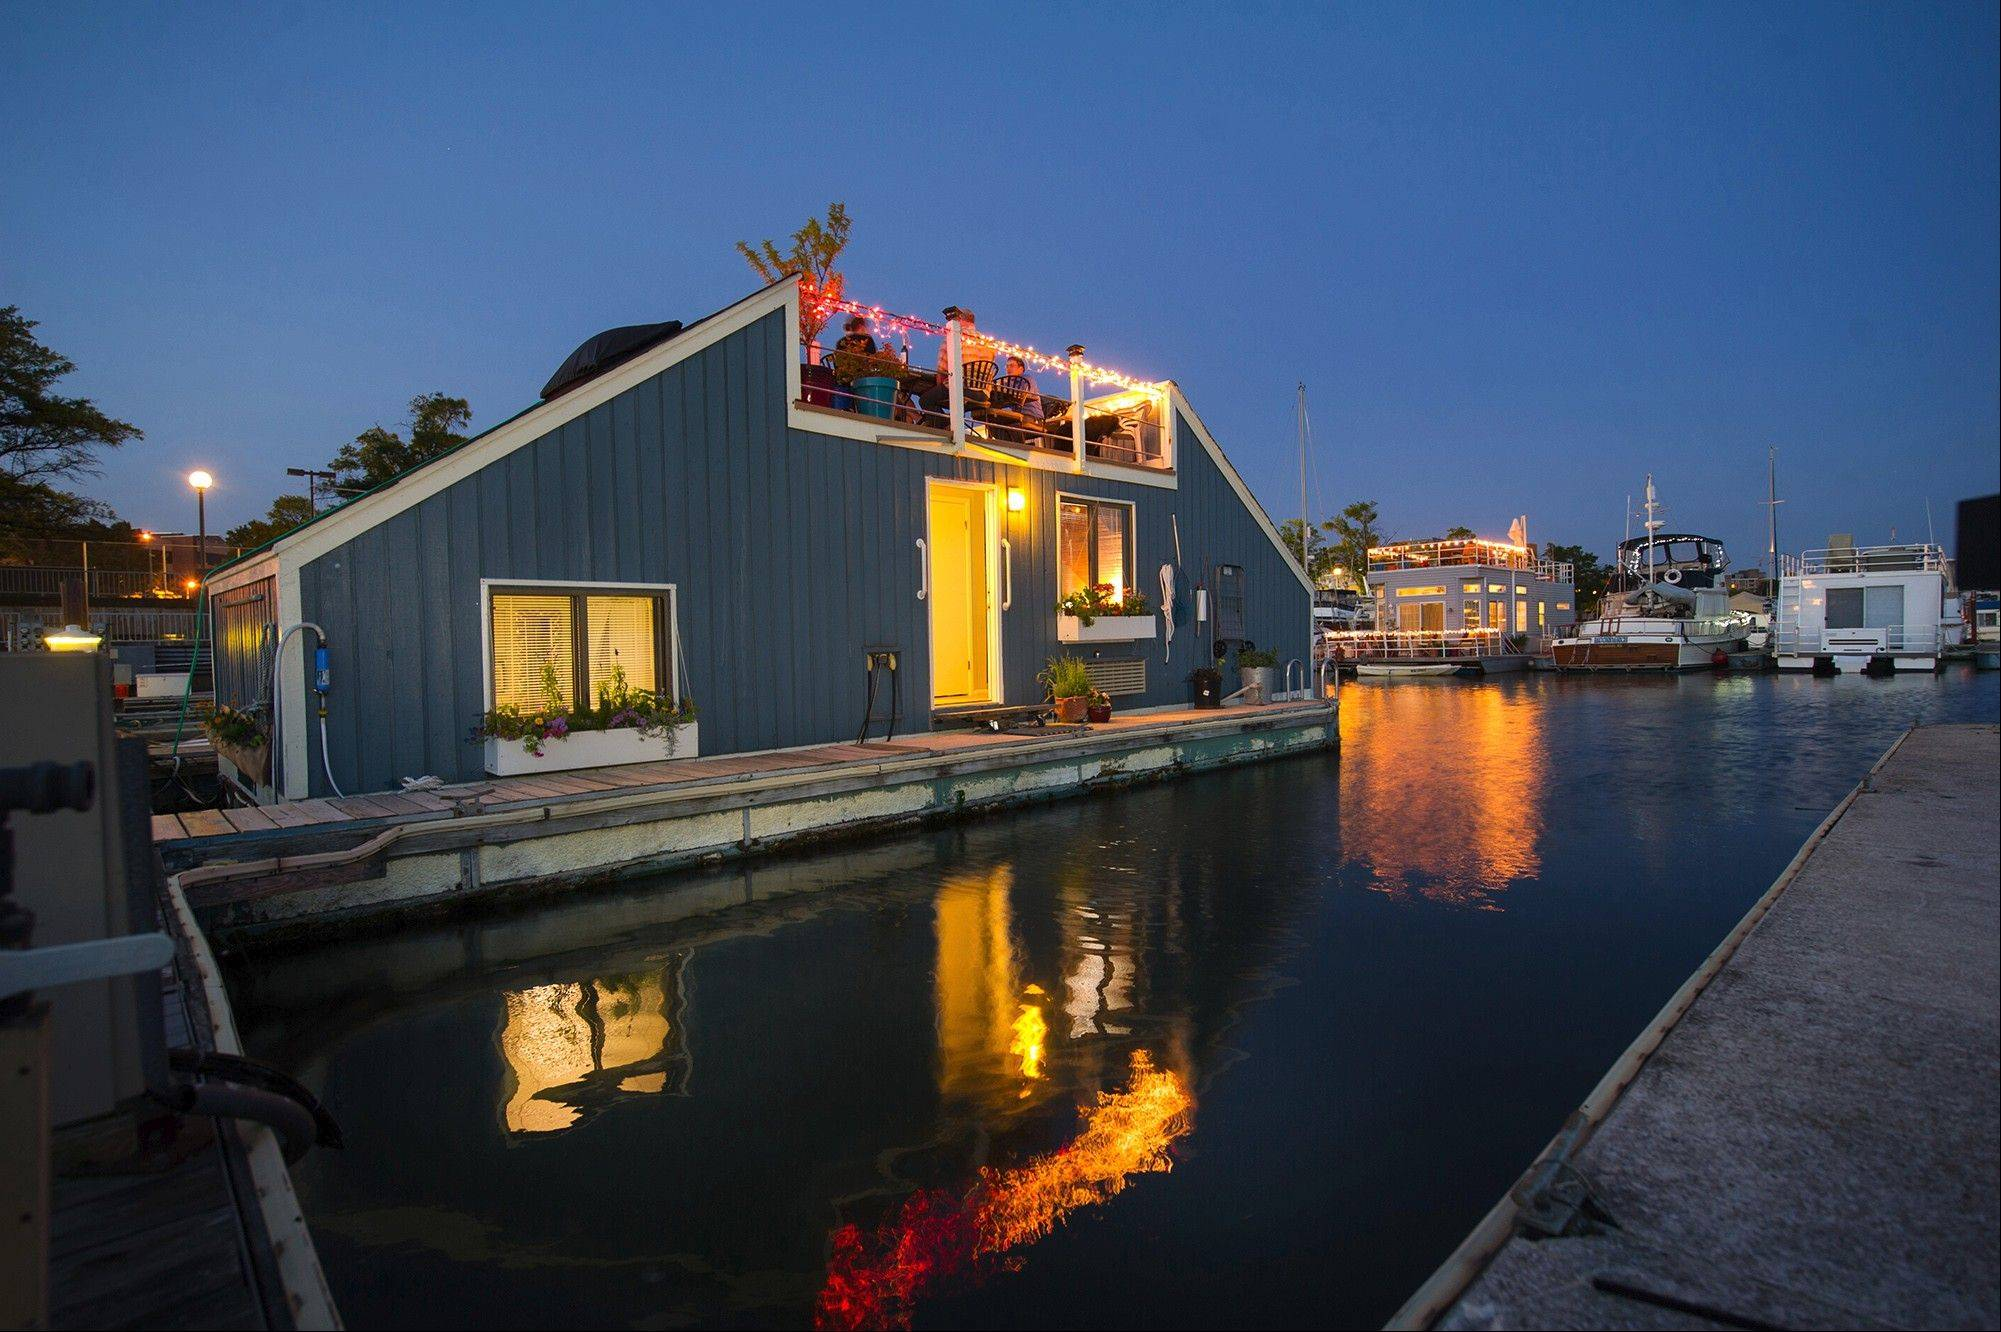 Karen Anderson�s houseboat, Serendipity 2, at Gangplank Marina in Washington. The Serendipity, a barge that looks like an A-frame with the top lopped off, has less than 500 square feet.